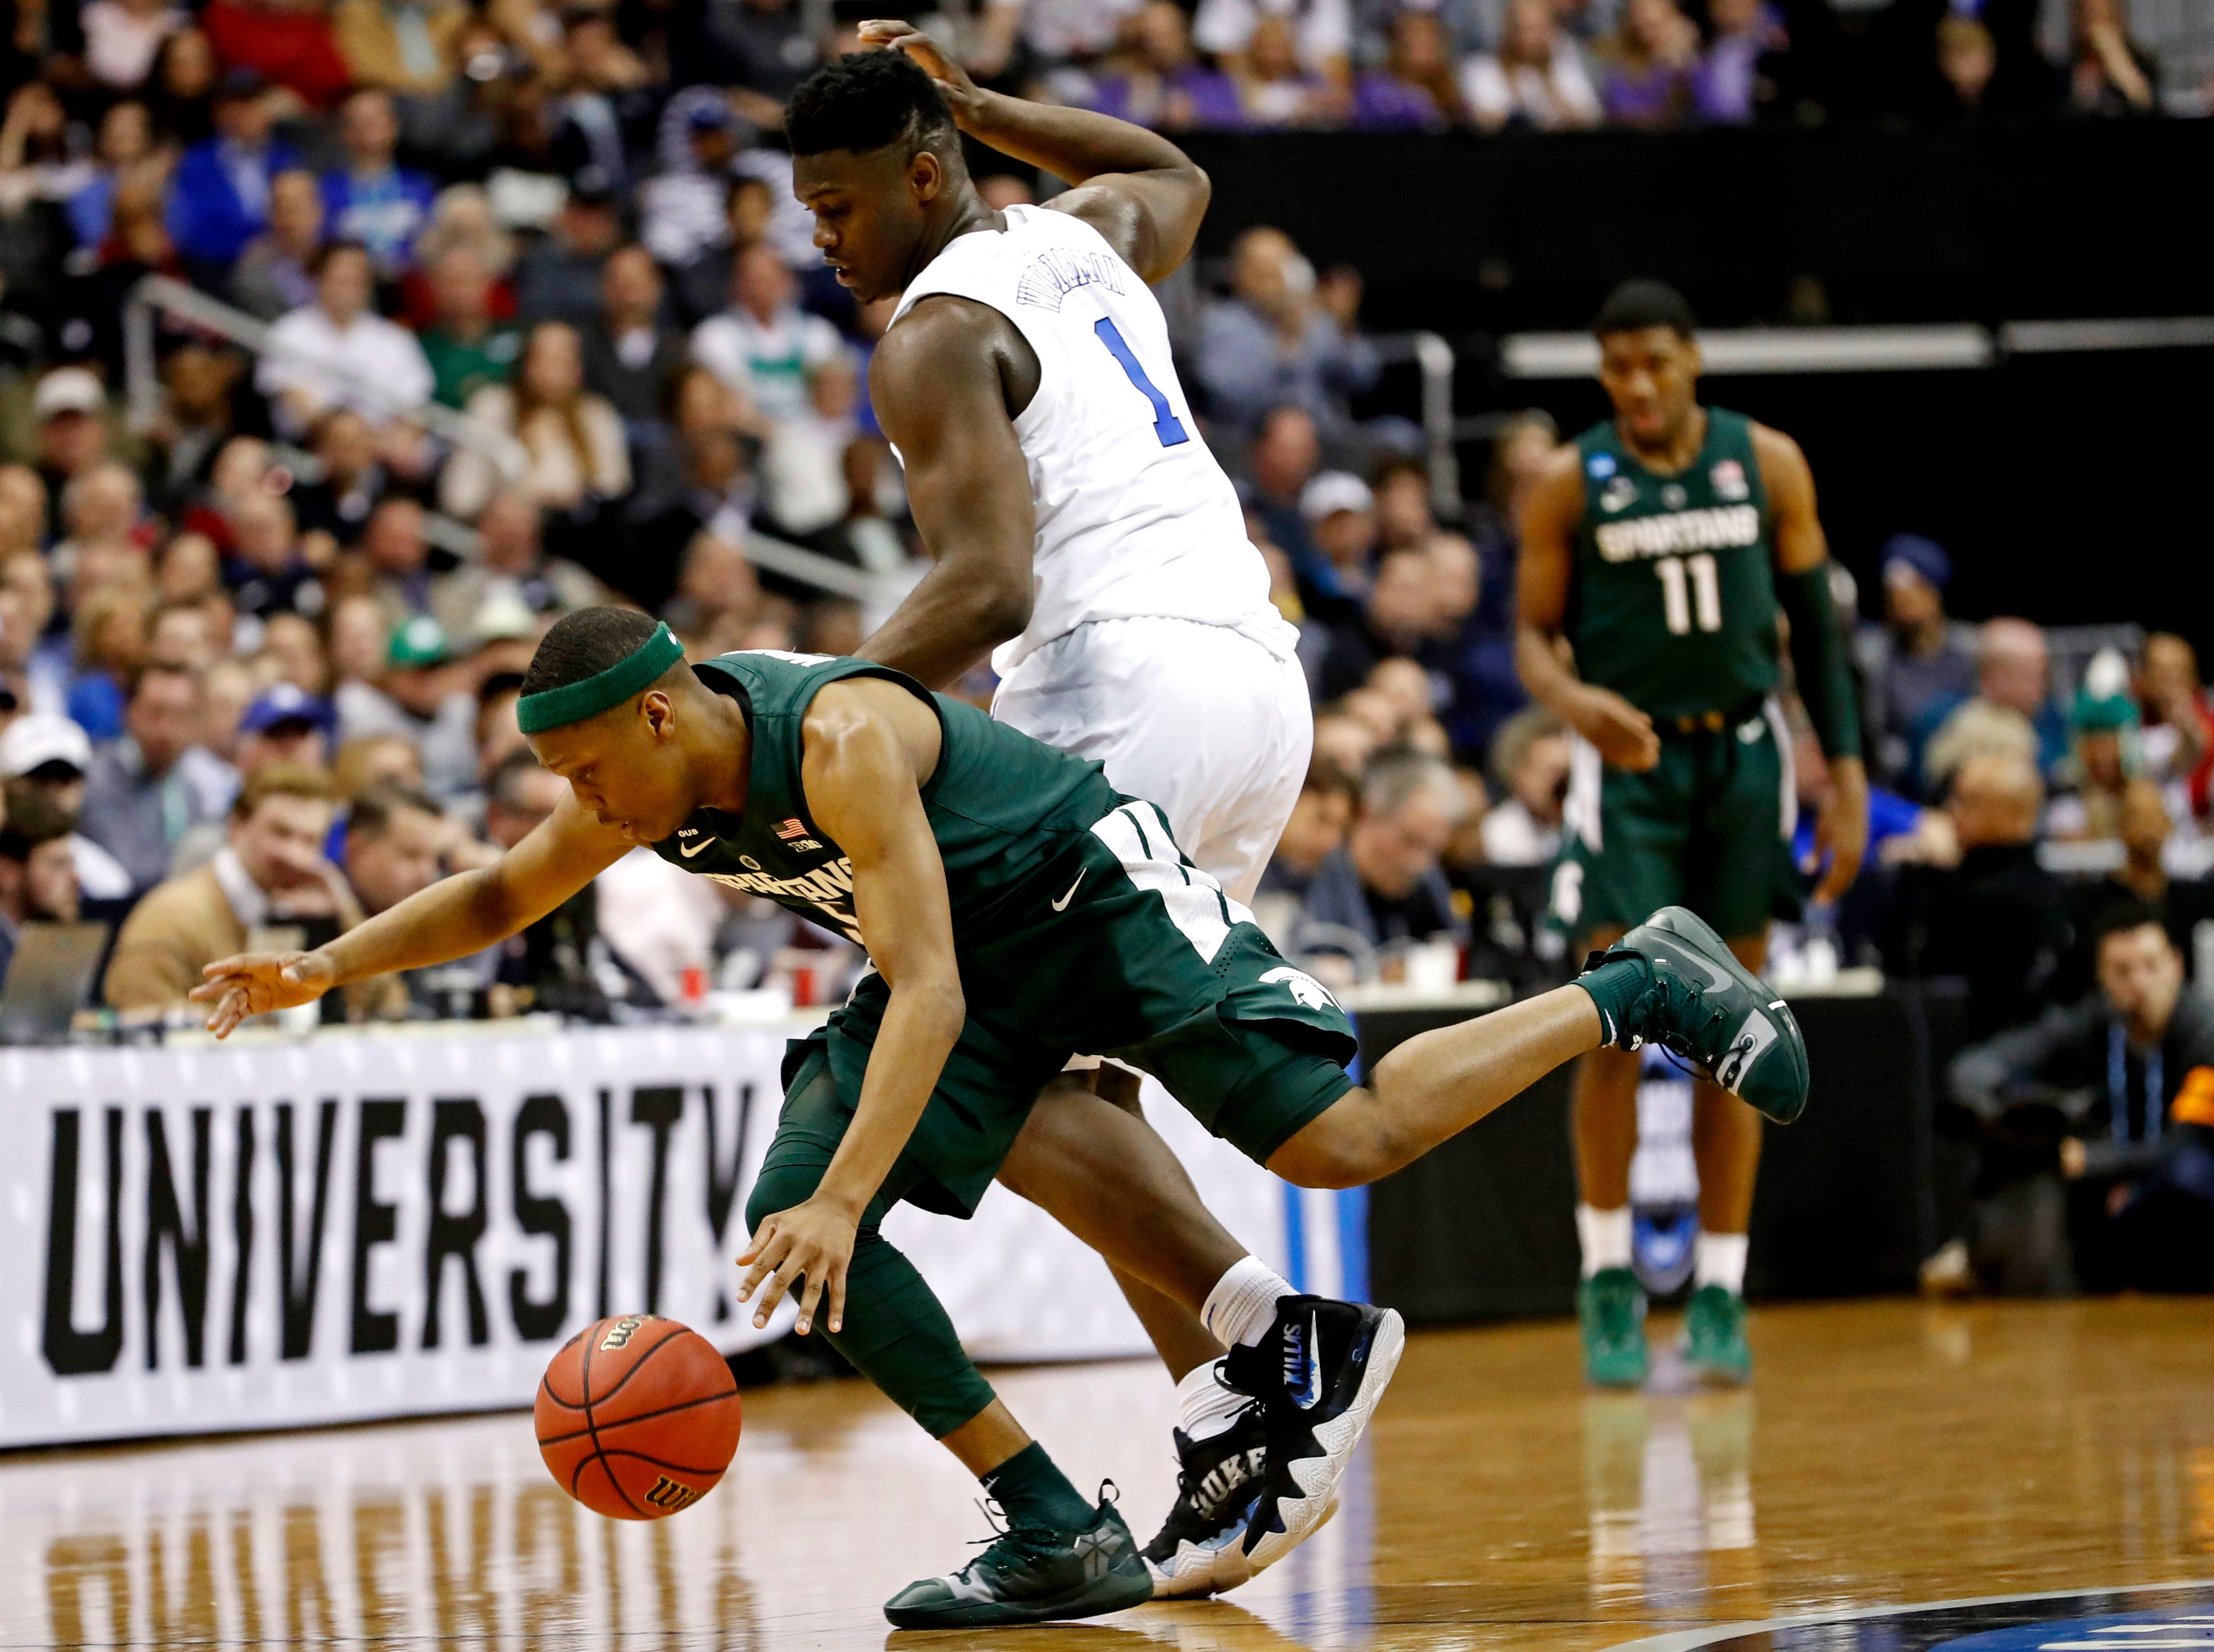 Mar 31, 2019; Washington, DC, USA; Duke Blue Devils forward Zion Williamson (1) and Michigan State Spartans guard Cassius Winston (5) go for a loose ball during the first half in the championship game of the east regional of the 2019 NCAA Tournament at Capital One Arena. Mandatory Credit: Geoff Burke-USA TODAY Sports